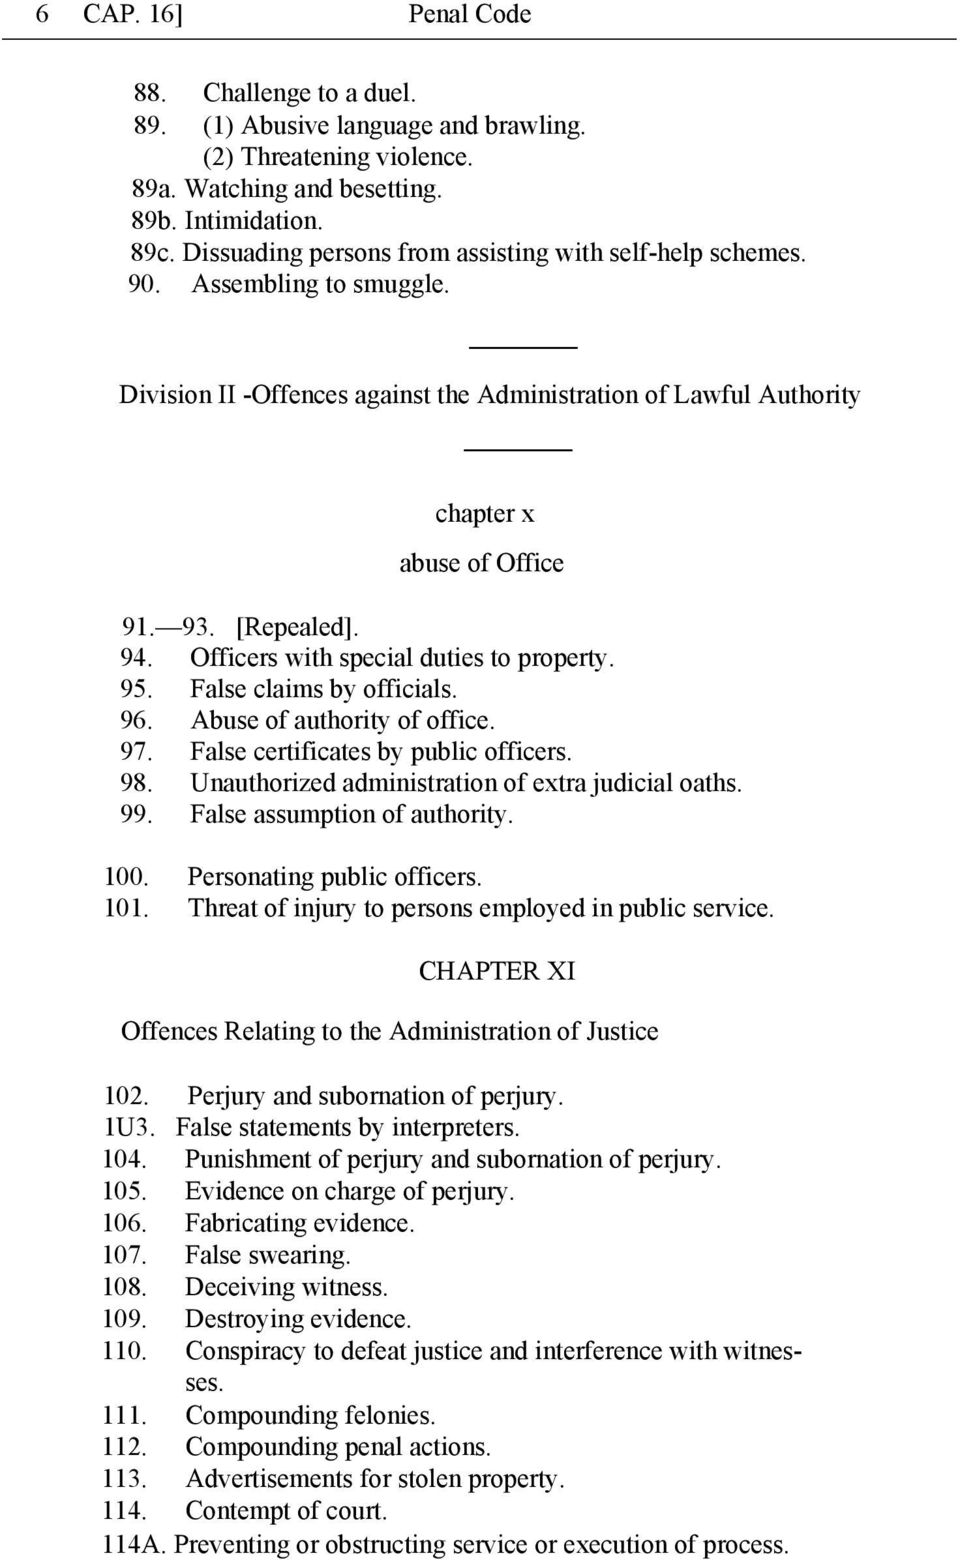 94. Officers with special duties to property. 95. False claims by officials. 96. Abuse of authority of office. 97. False certificates by public officers. 98.